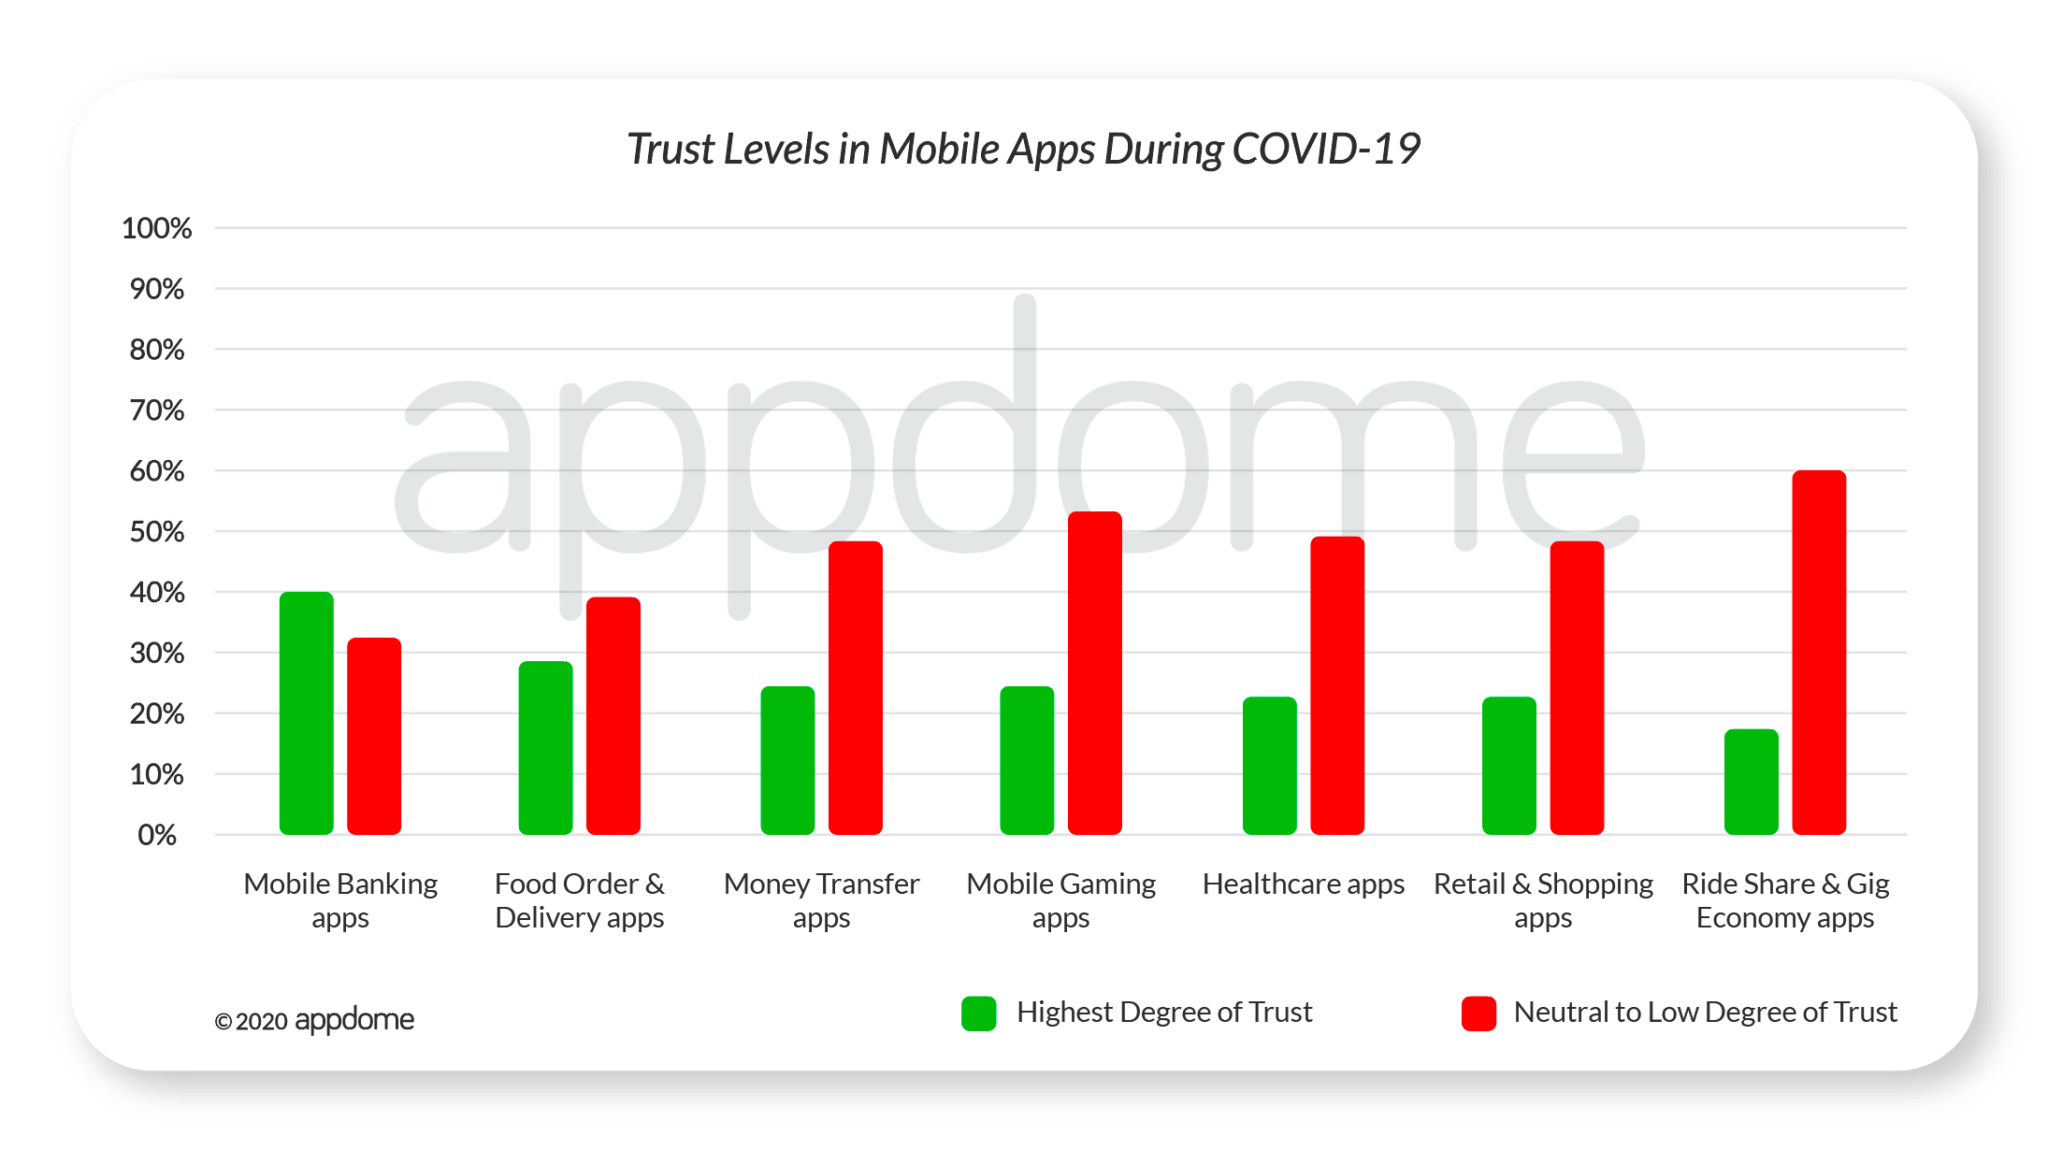 COVID-19 Mobile Consumer Survey -- Trust Levels in Mobile Apps